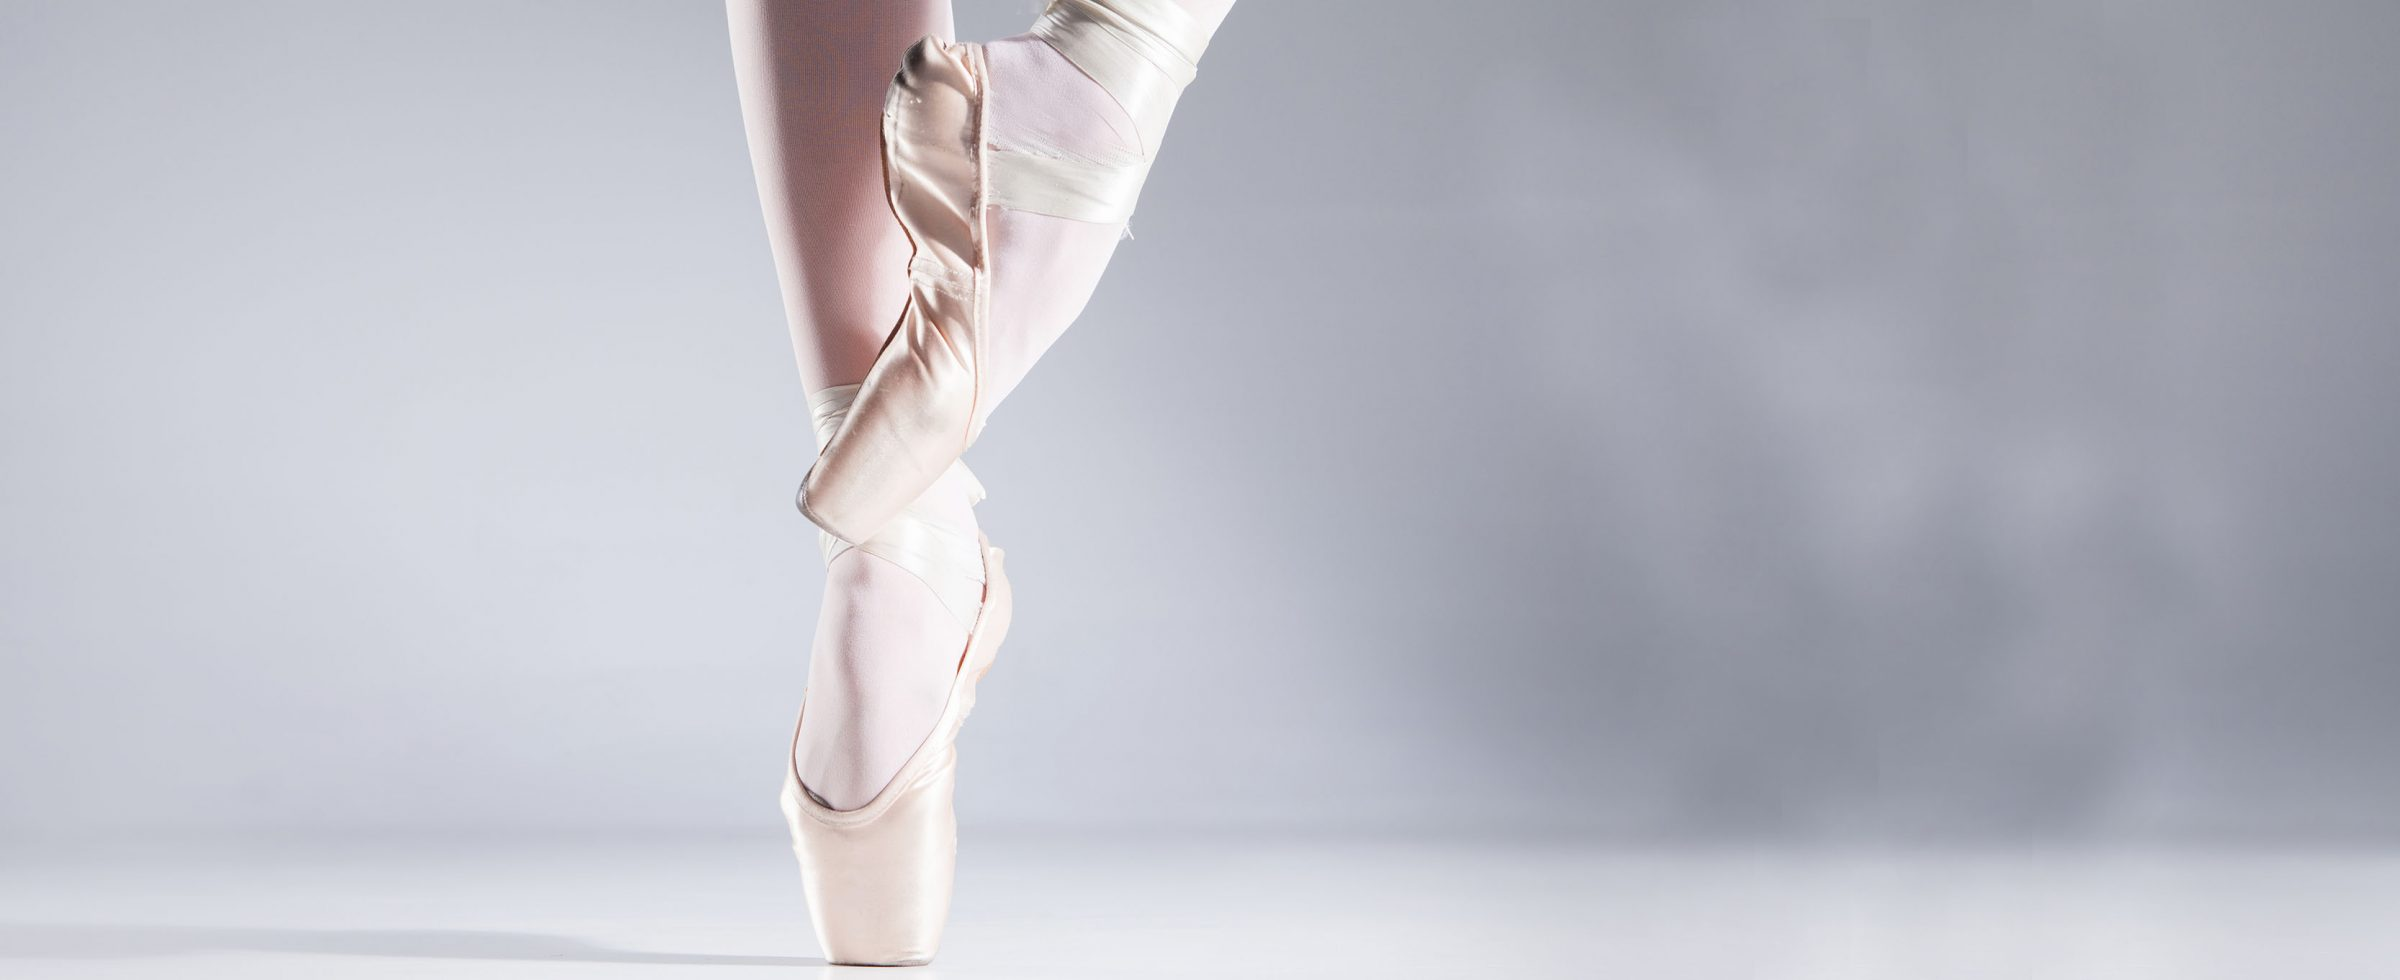 Legs of a graceful ballet dancer en pointe on toes.